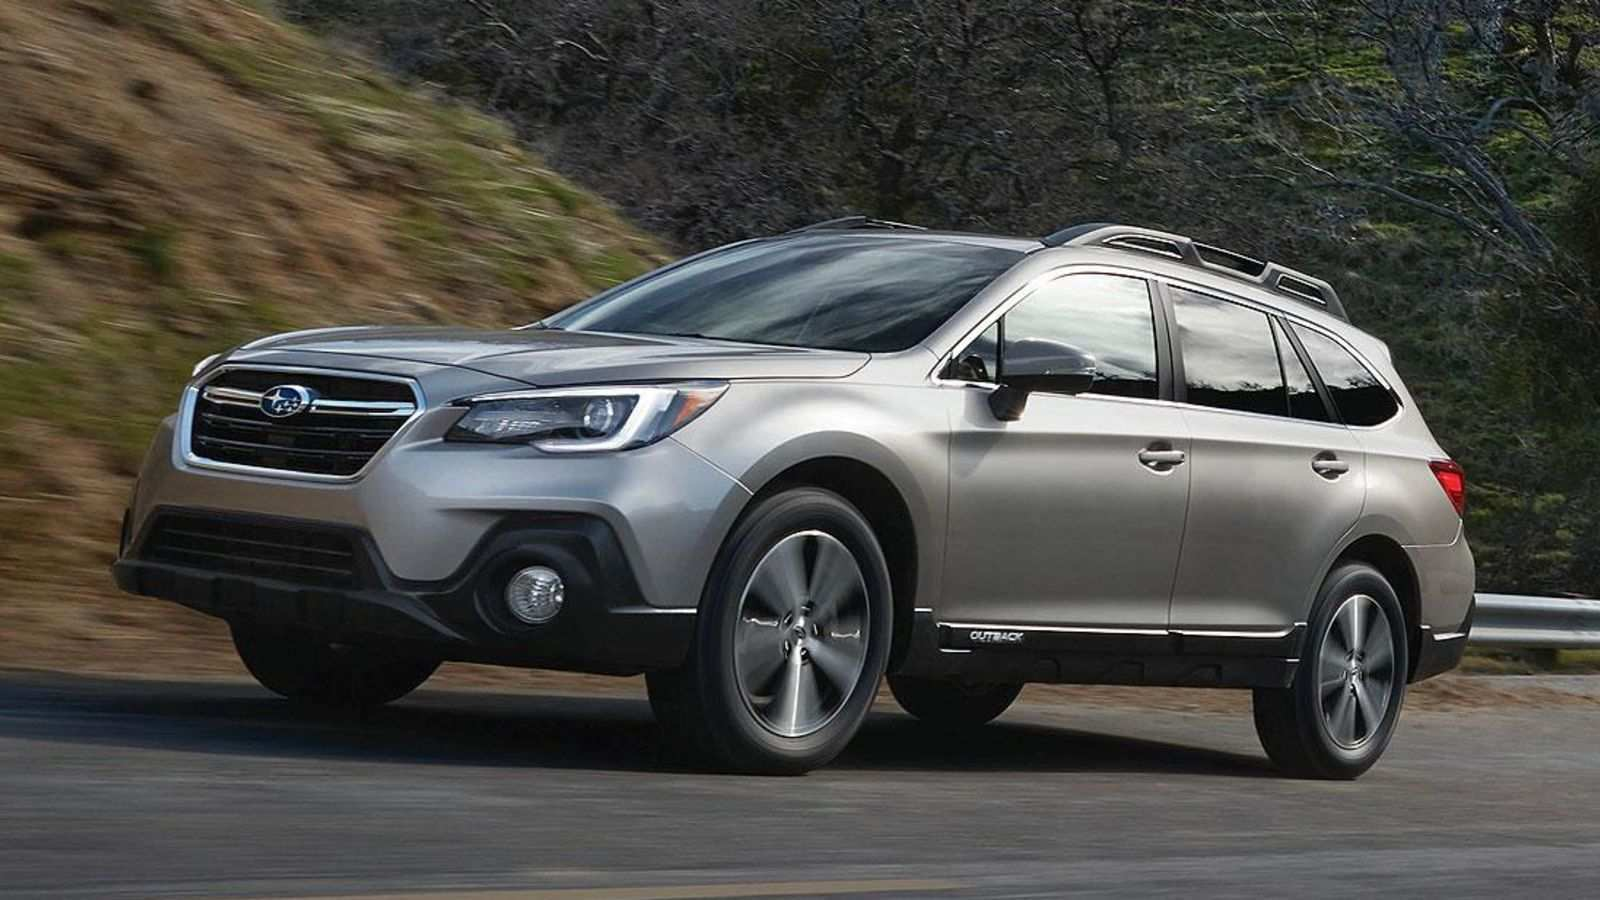 30 Gallery of 2020 Subaru Outback Jalopnik Pricing by 2020 Subaru Outback Jalopnik